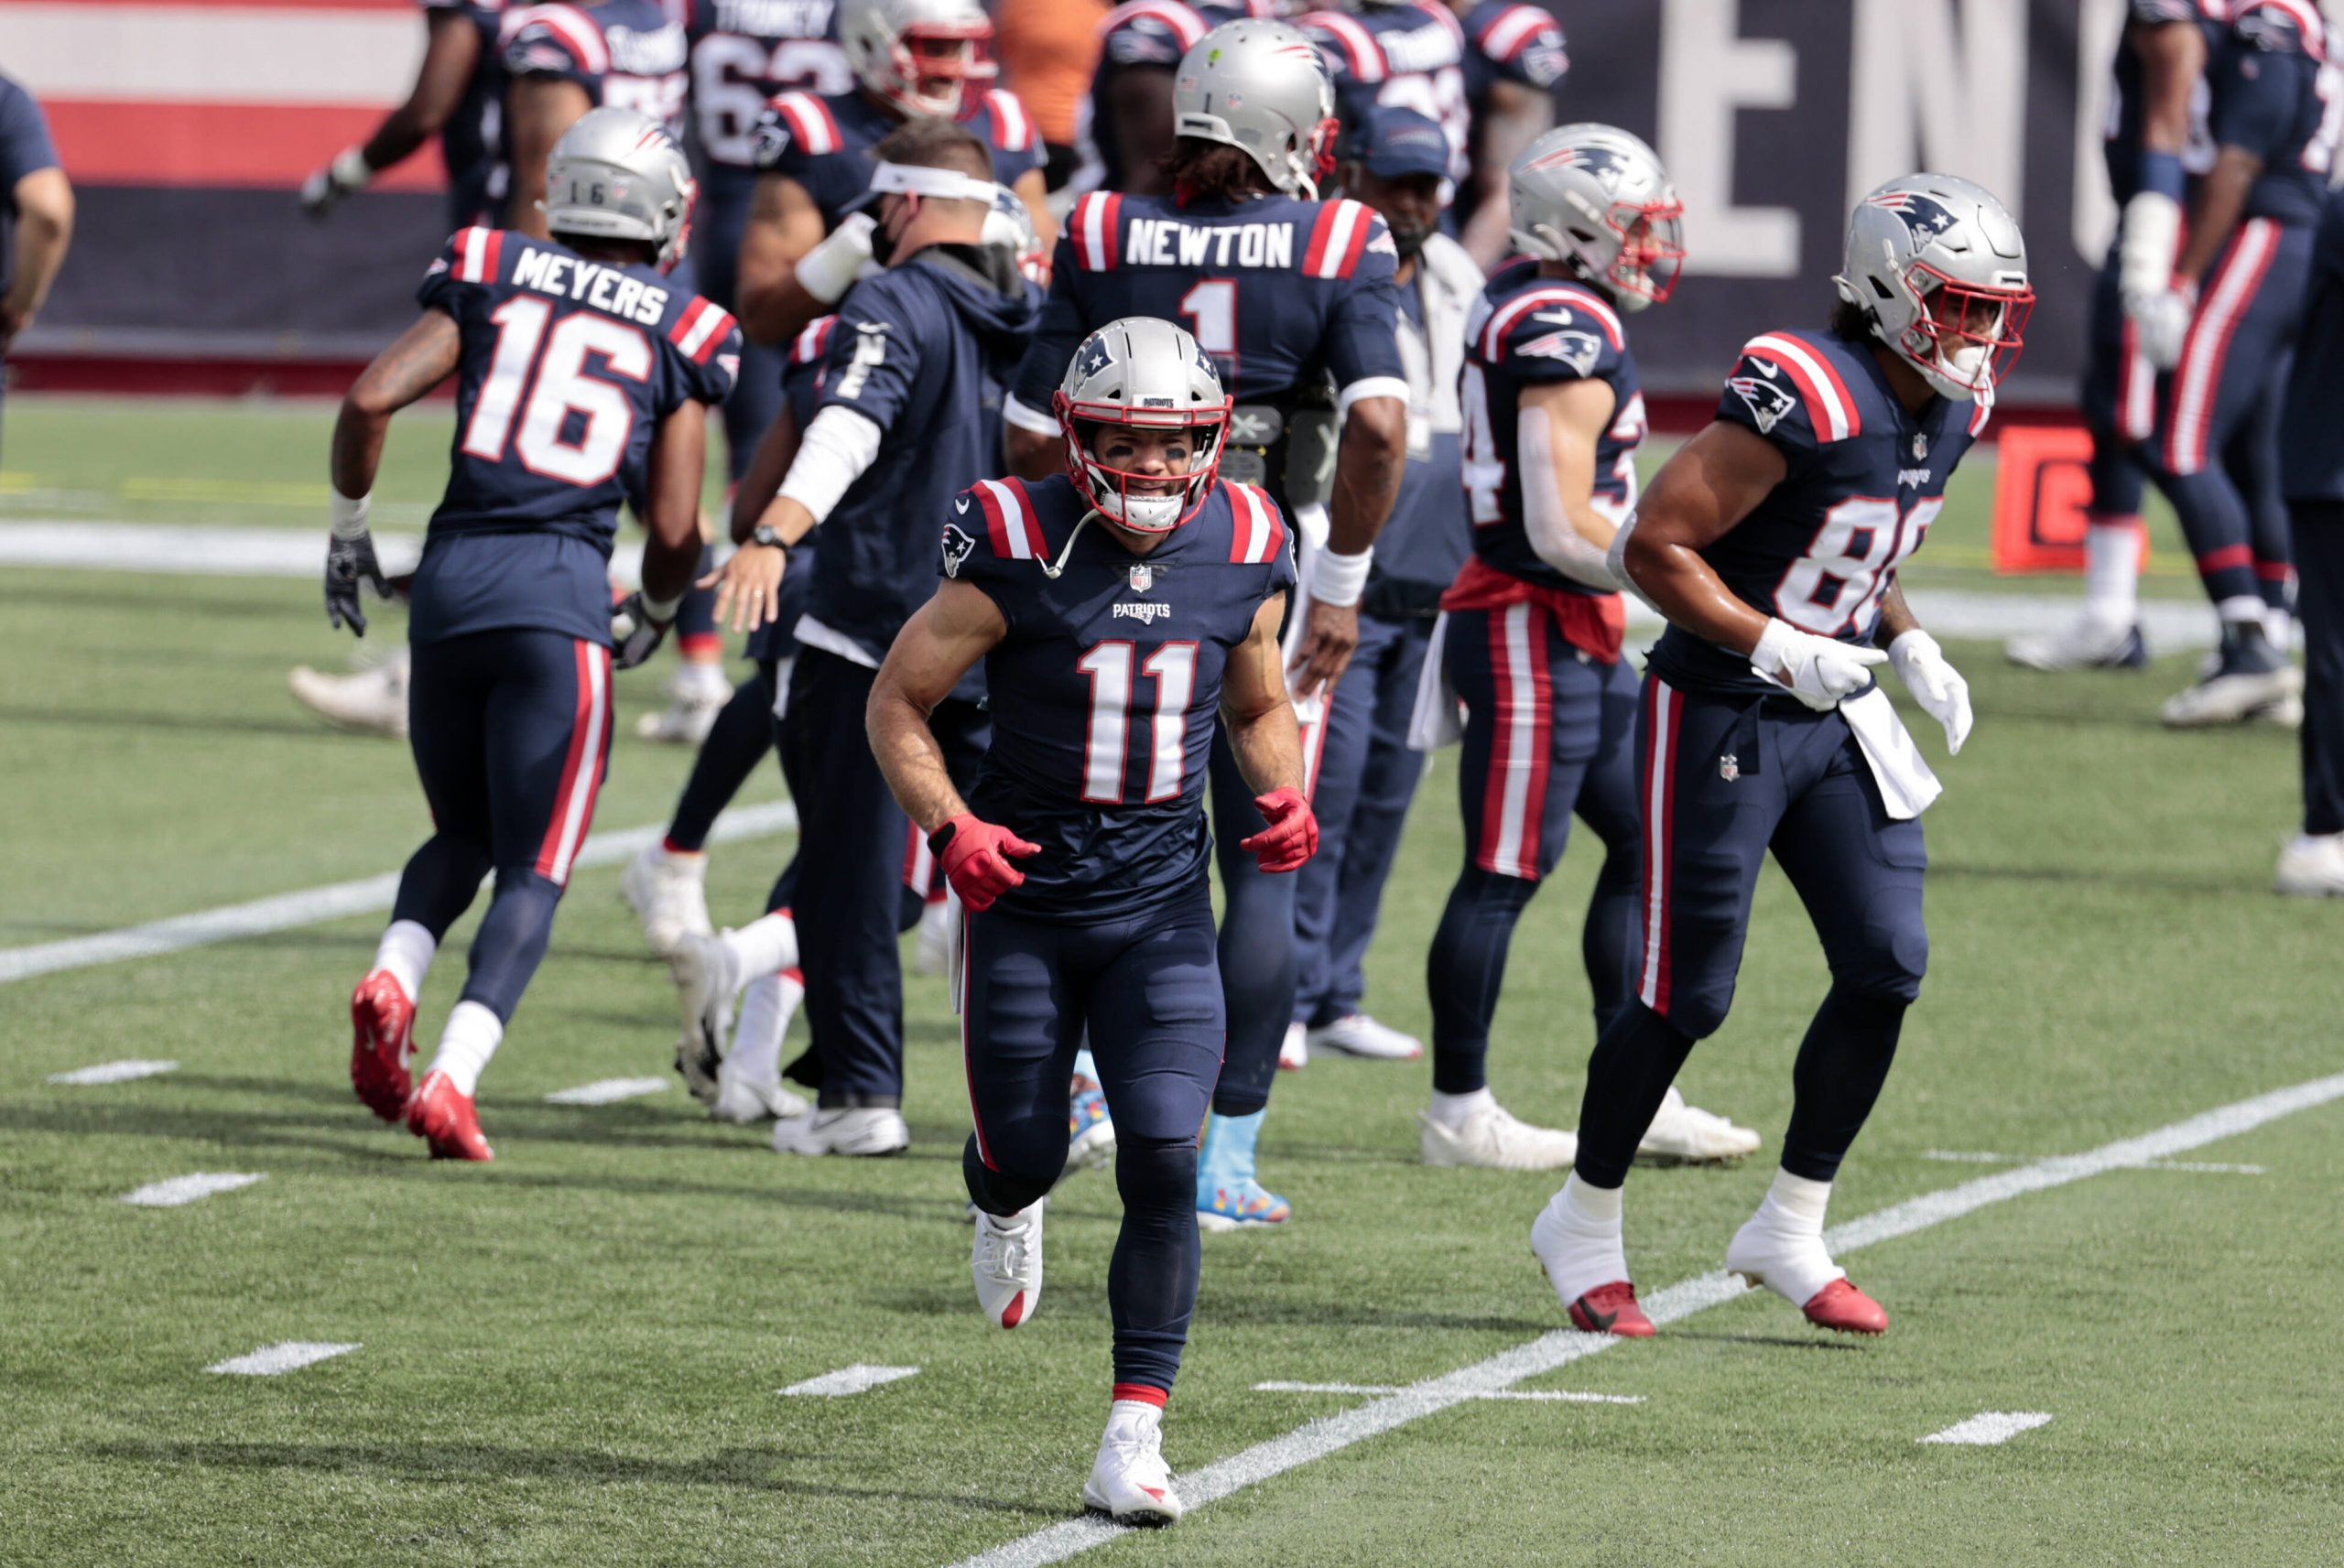 FOXBOROUGH, MA - SEPTEMBER 27: New England Patriots wide receiver Julian Edelman (11) breaks from the huddle before a ga